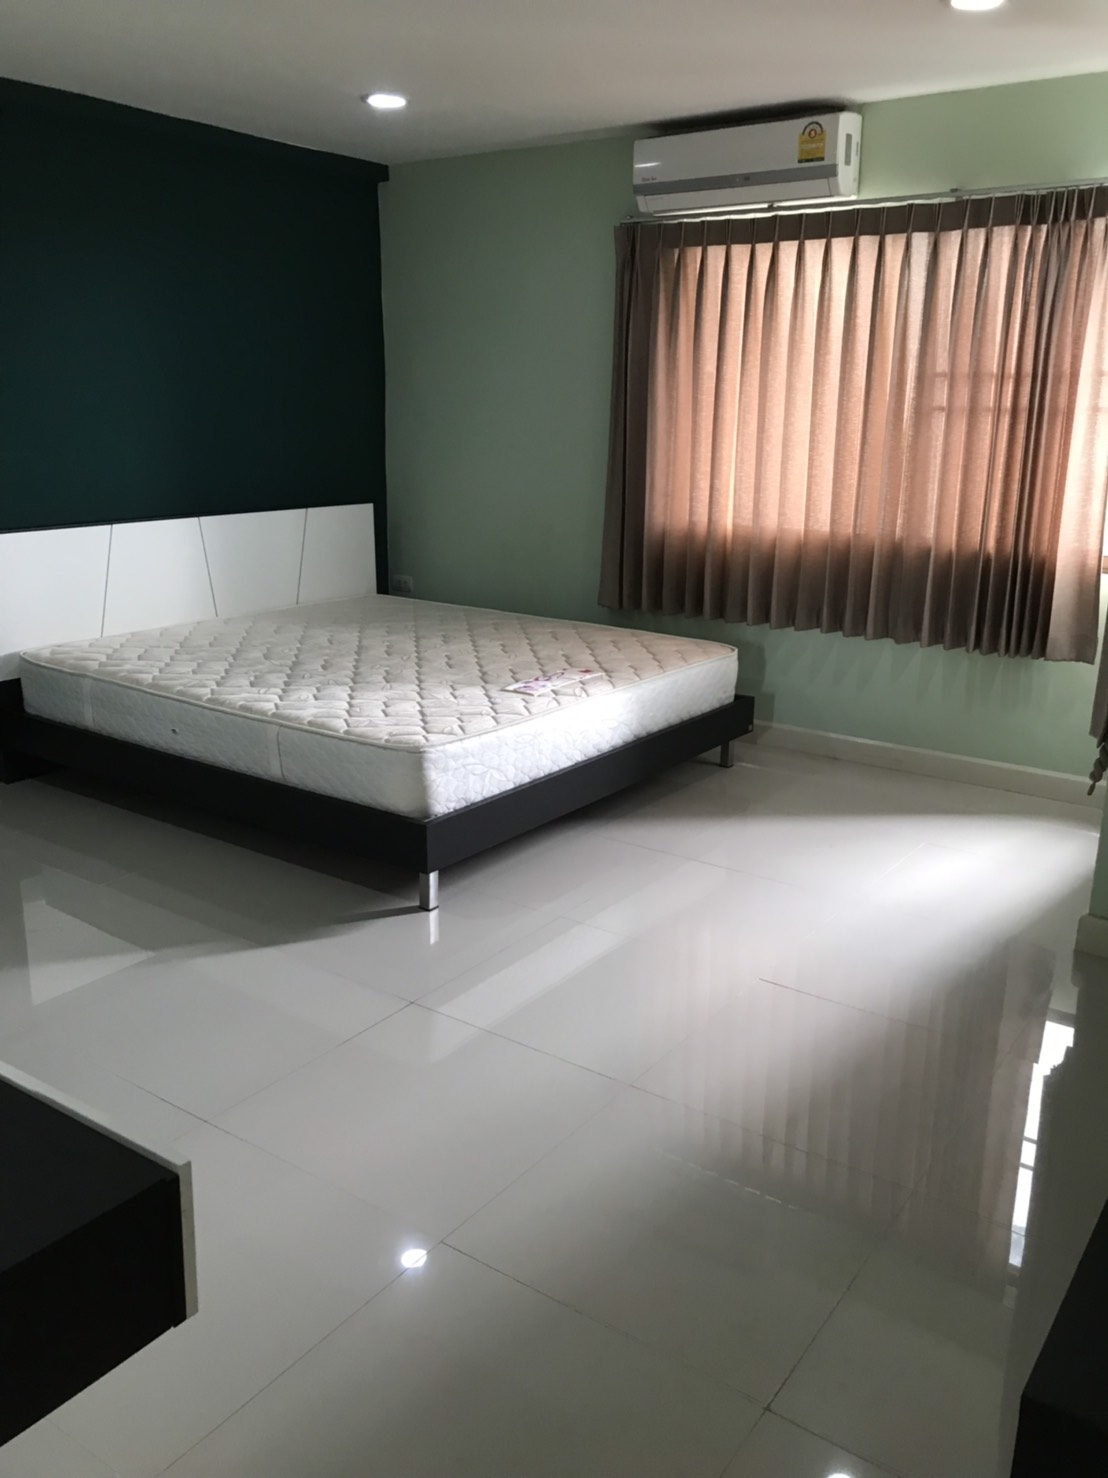 2 bedrooms and 2 bathrooms for rent - kio home and property